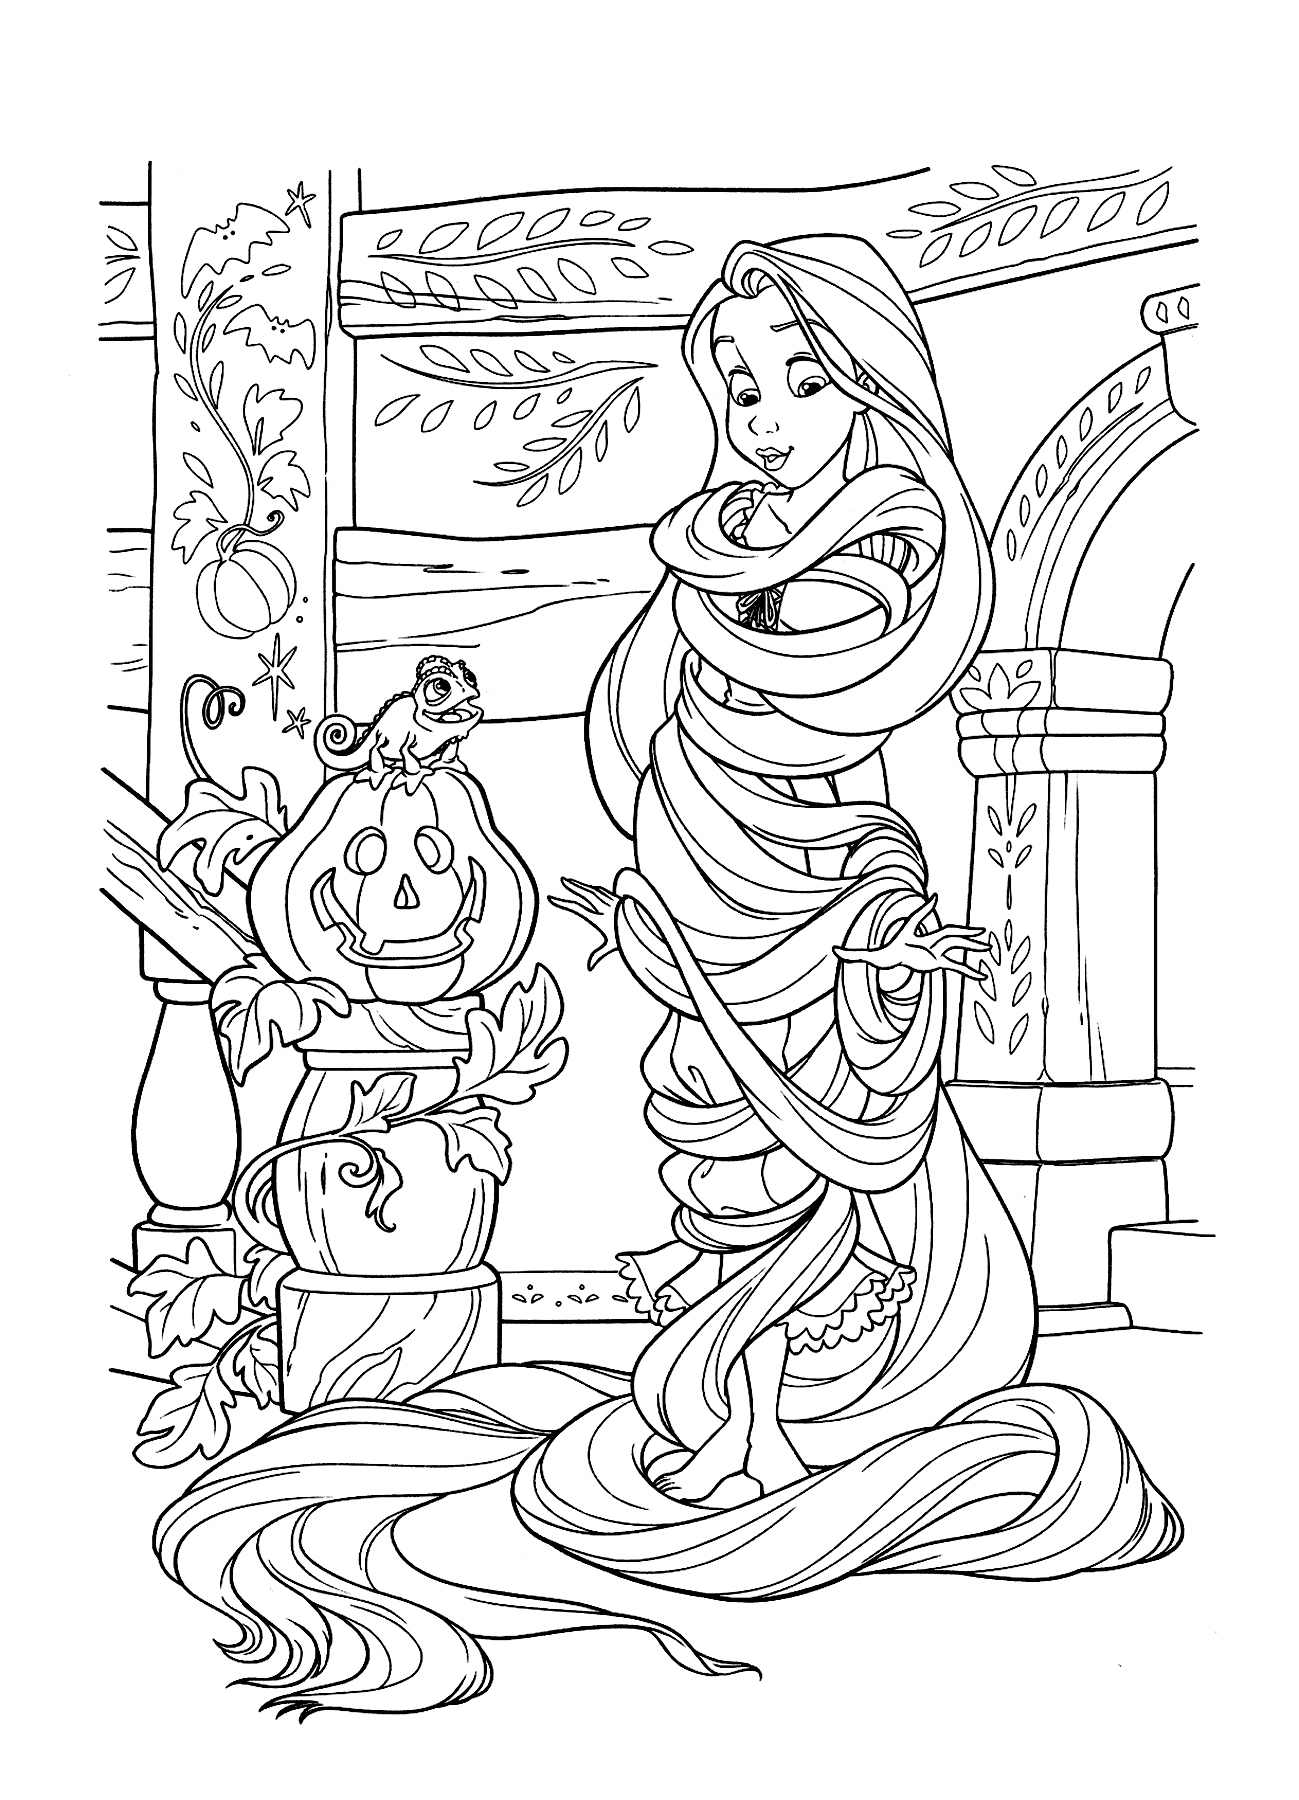 Rapunzel is tied by her long hair Coloring Page